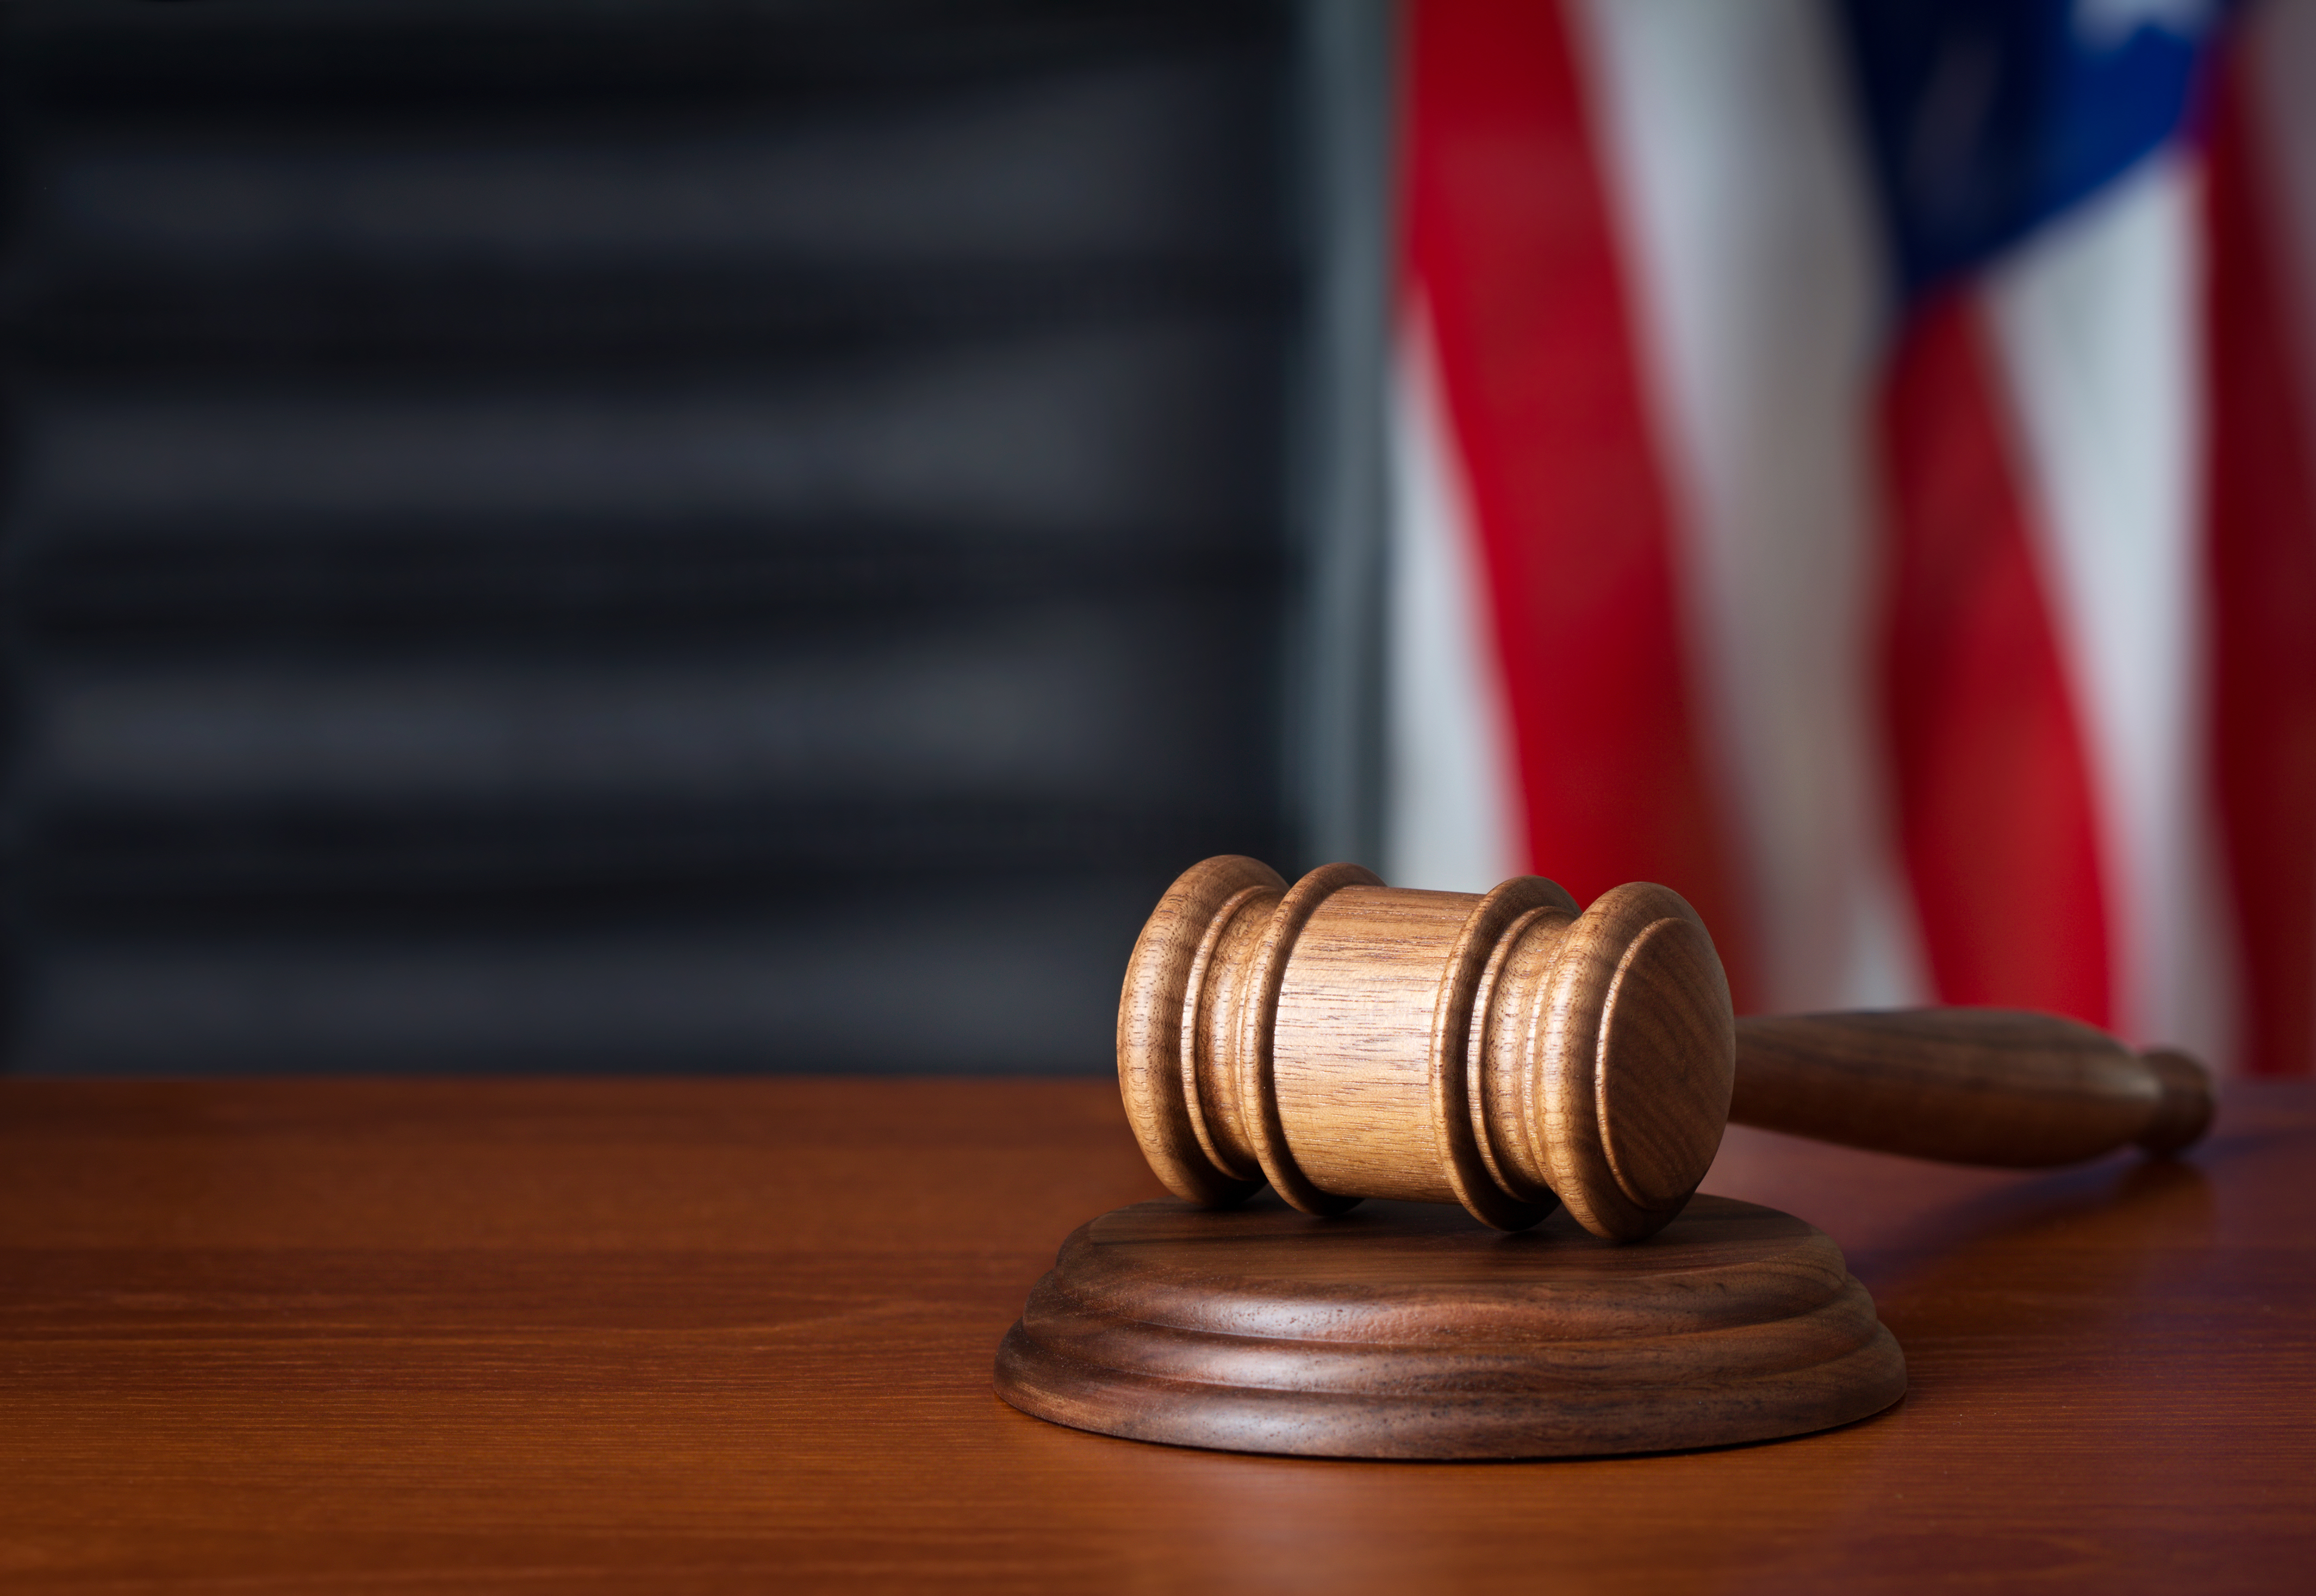 Class action lawsuit alleges 4 drug manufacturers conspired to restrict insulin sales to contracted pharmacies 340B